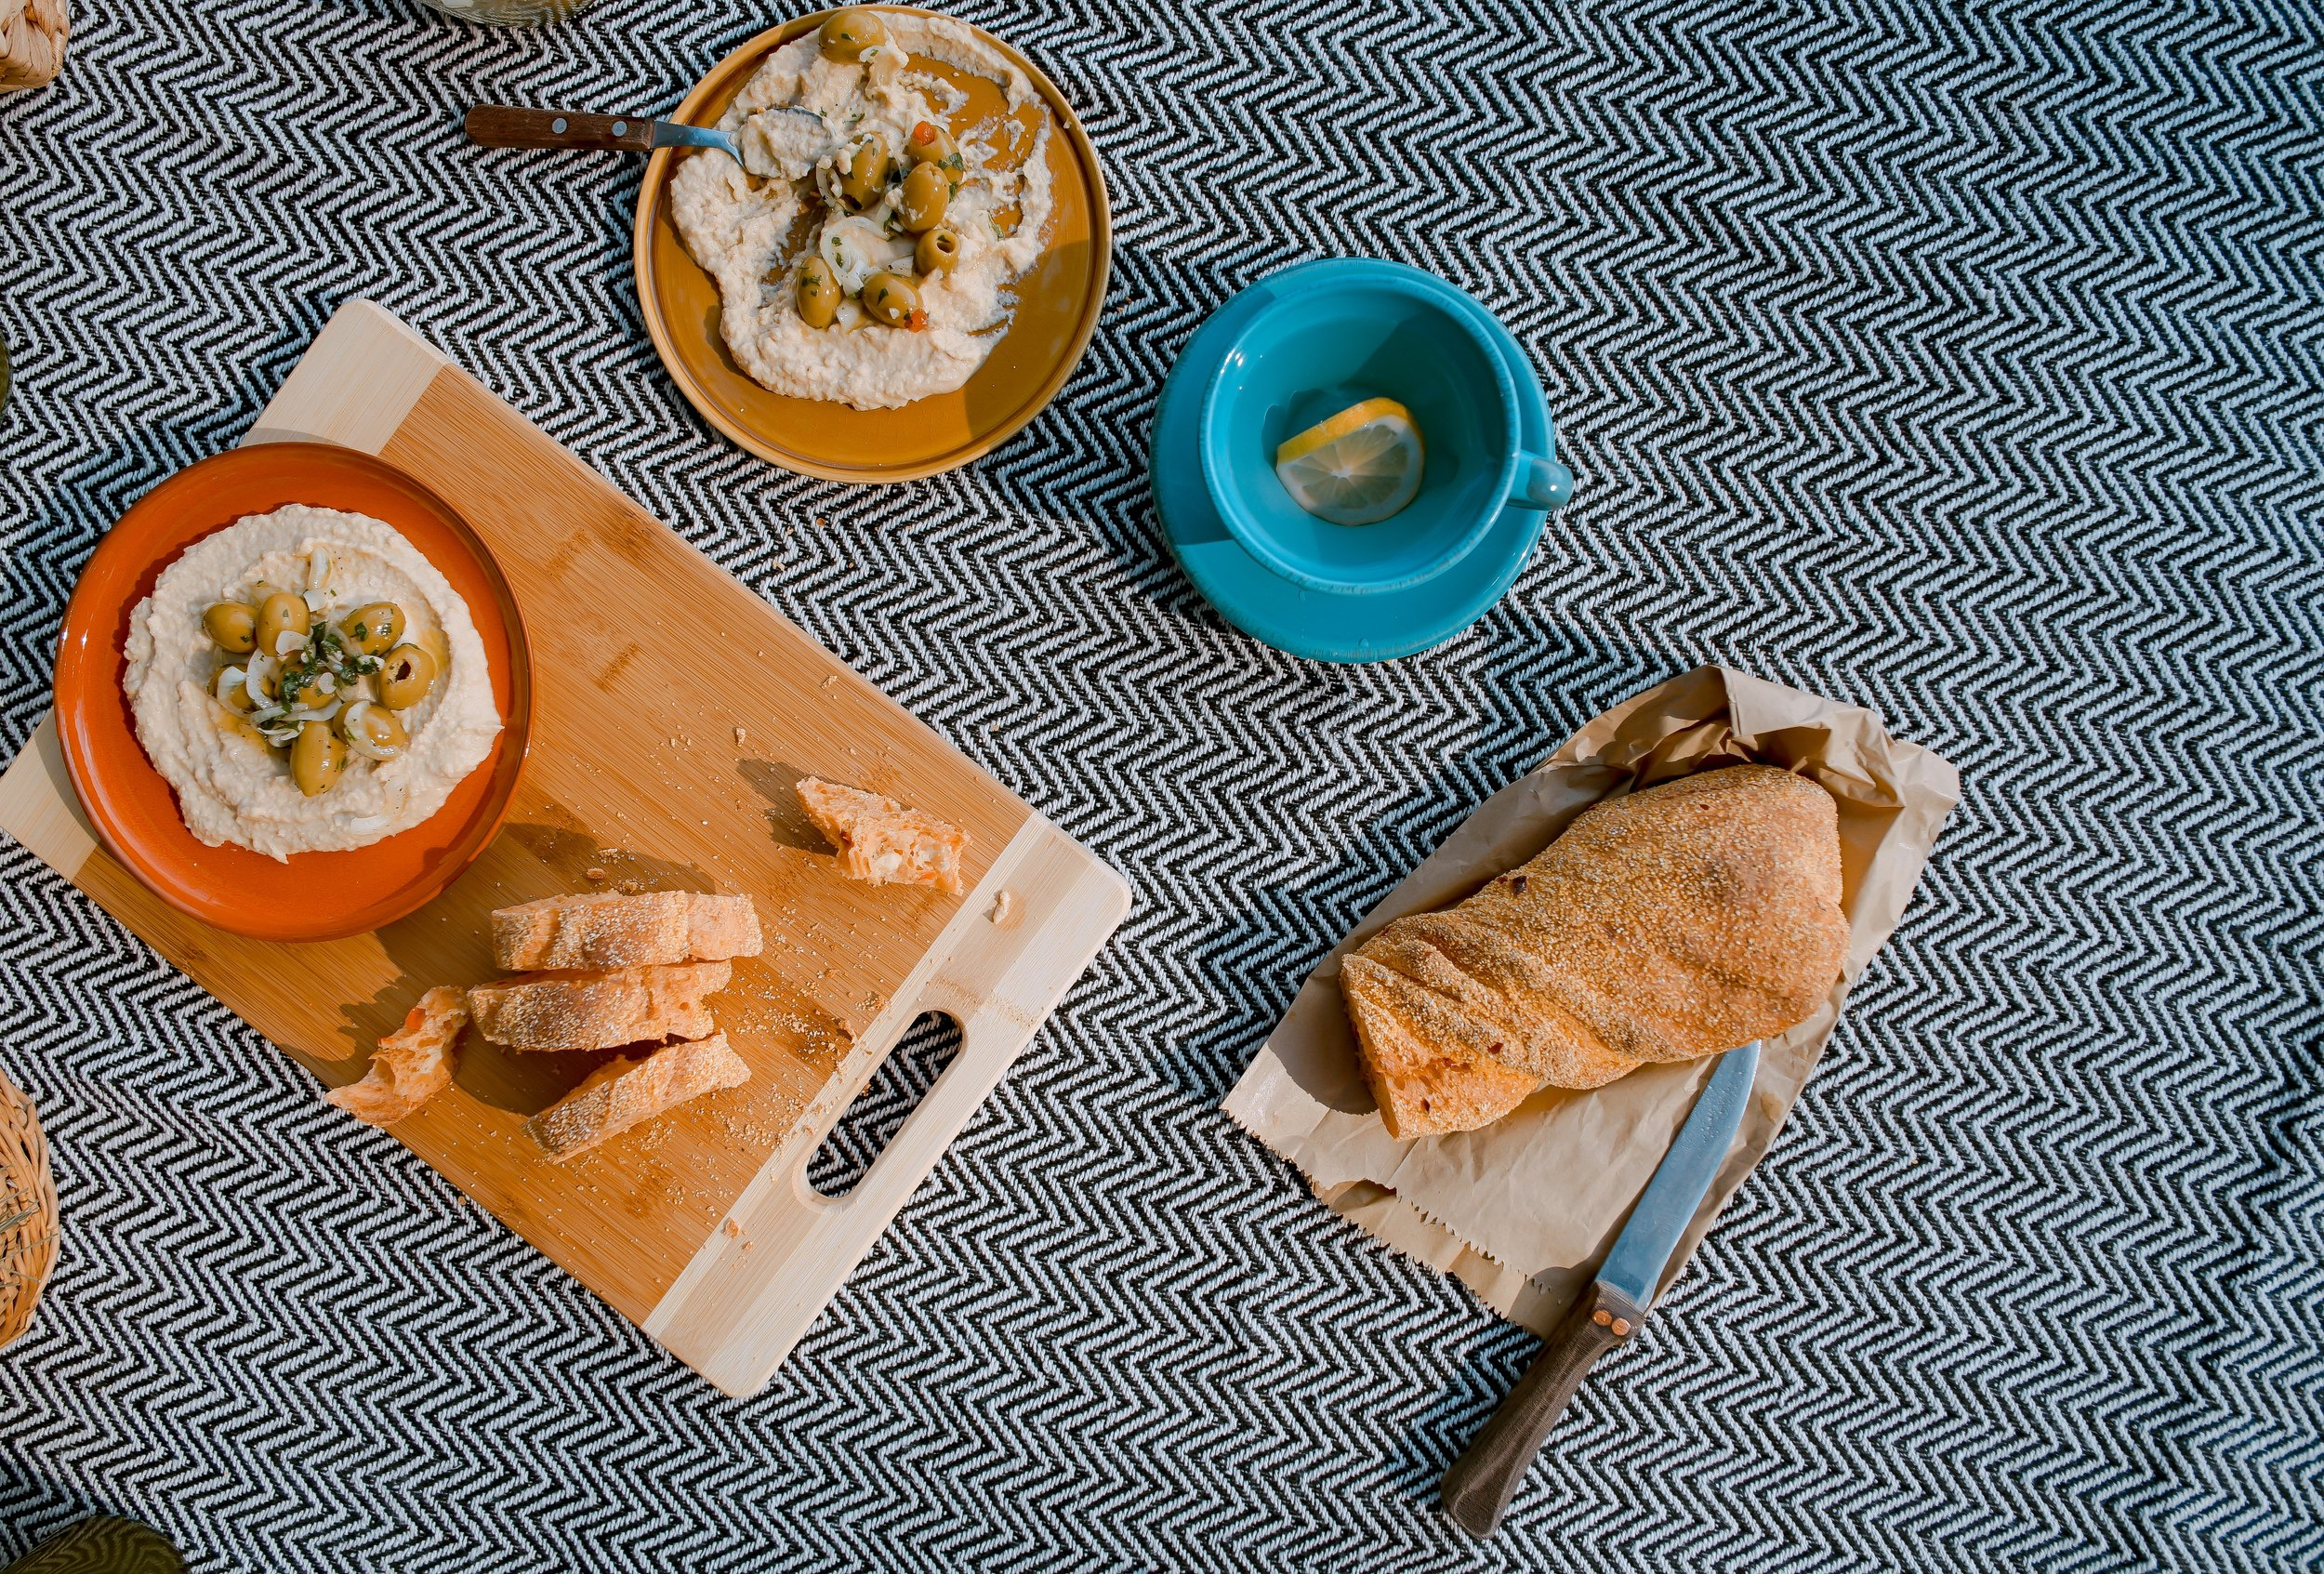 Hummus has established itself as one of the UK's favourite dips.